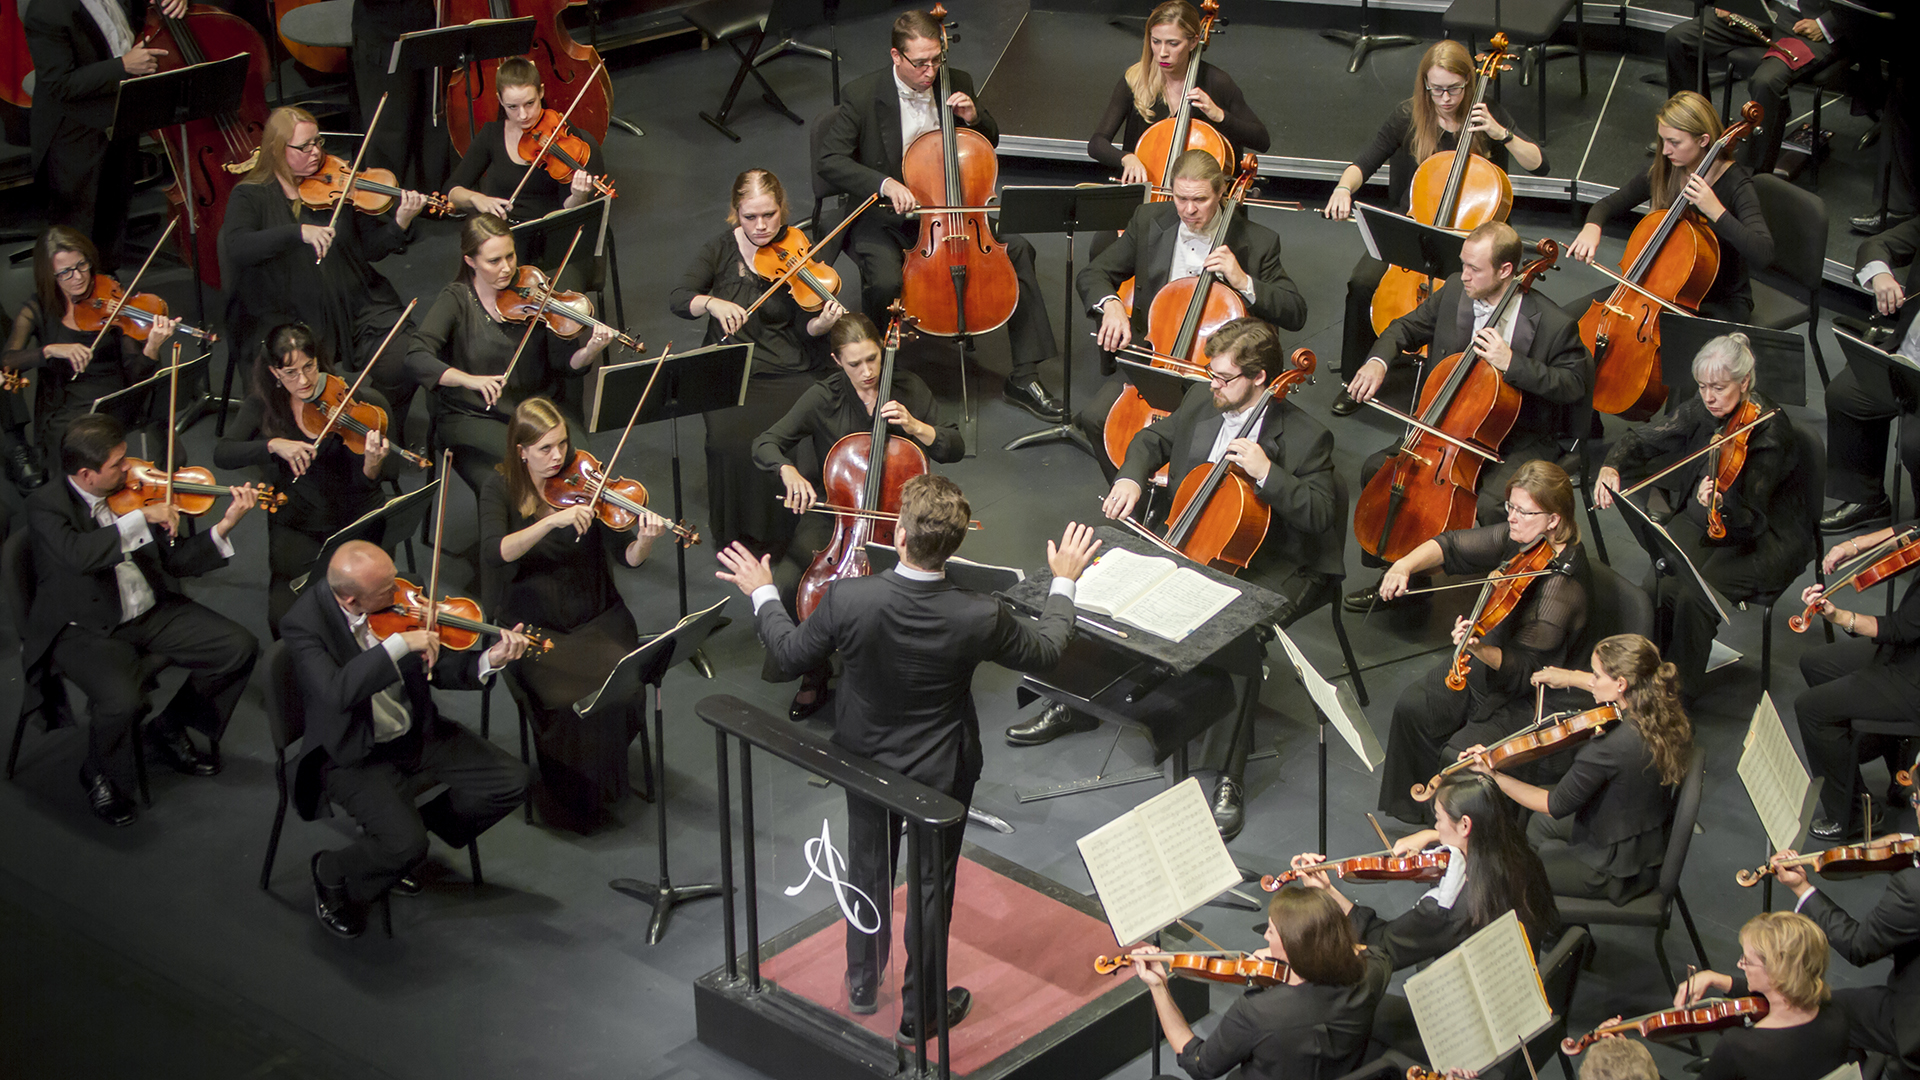 Amarillo Symphony's November concerts promise to be an emotional experience, conductor says